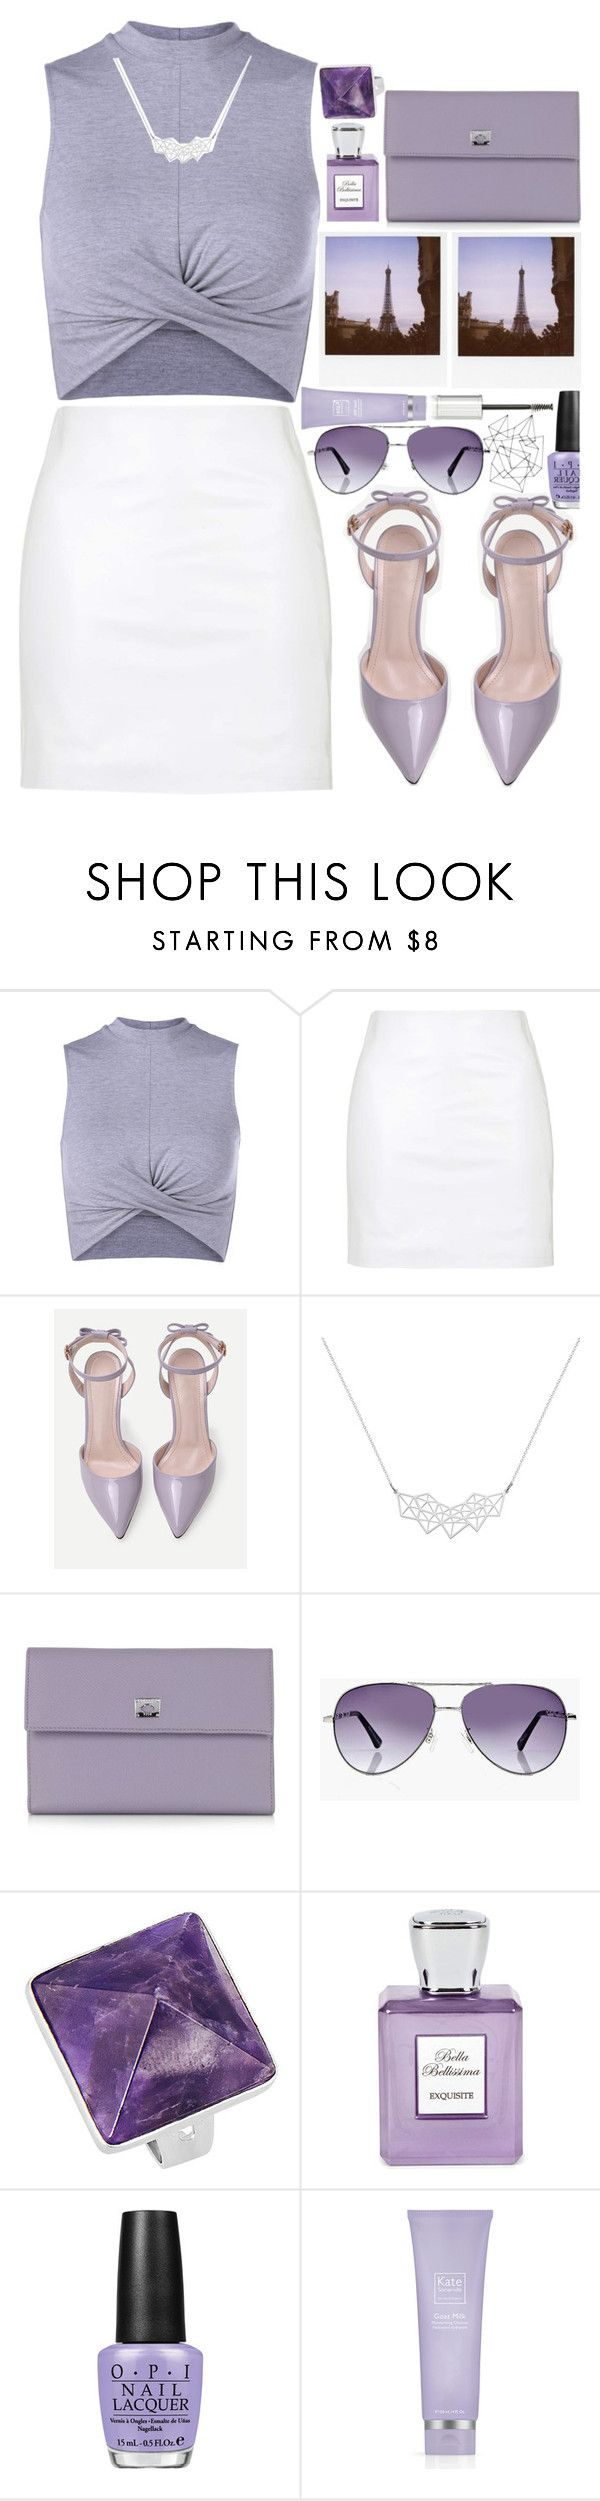 """""""Eiffel Tower"""" by jyellow-11 ❤ liked on Polyvore featuring Topshop, Polaroid, A Weathered Penny, Pineider, Boohoo, Bella Bellissima, OPI, Kate Somerville and Givenchy"""